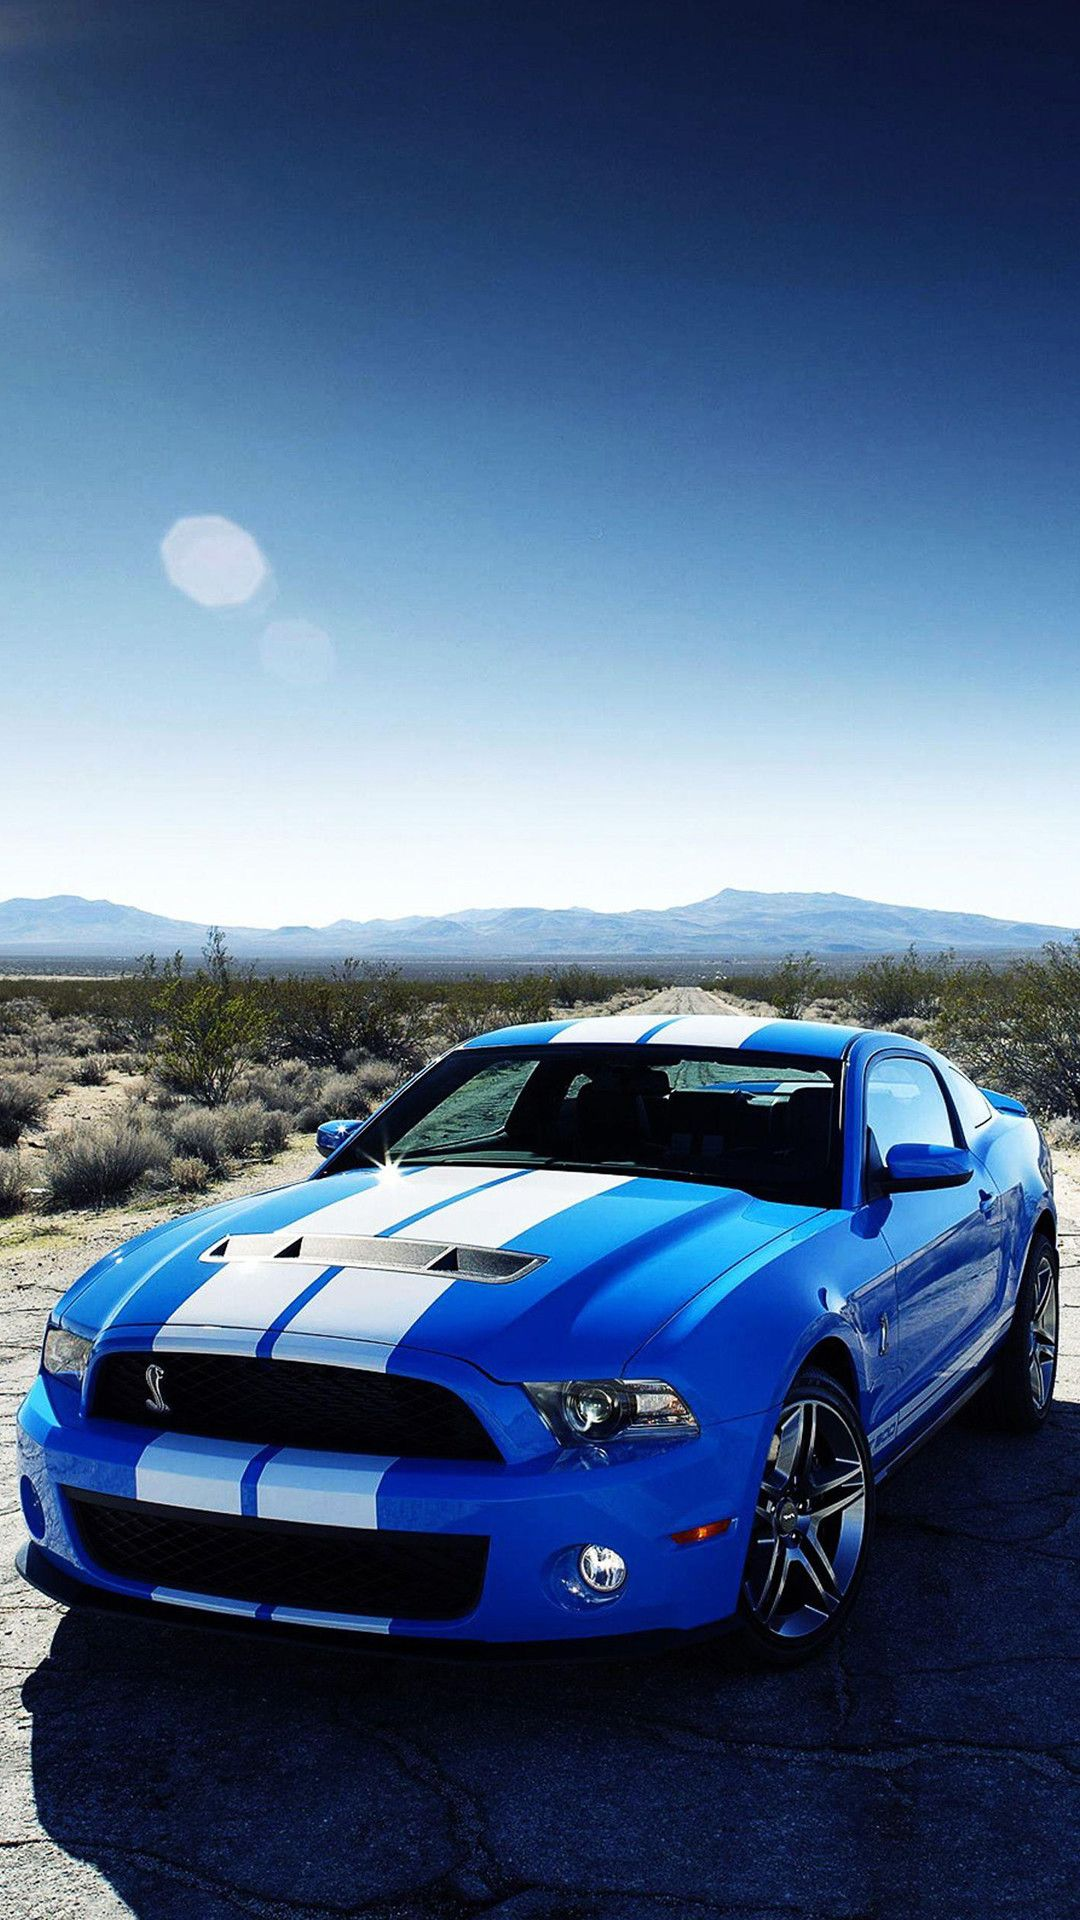 Car Background Picture Car Wallpapers Car Iphone Wallpaper Car Backgrounds Hd car wallpapers for iphone 6 1080p